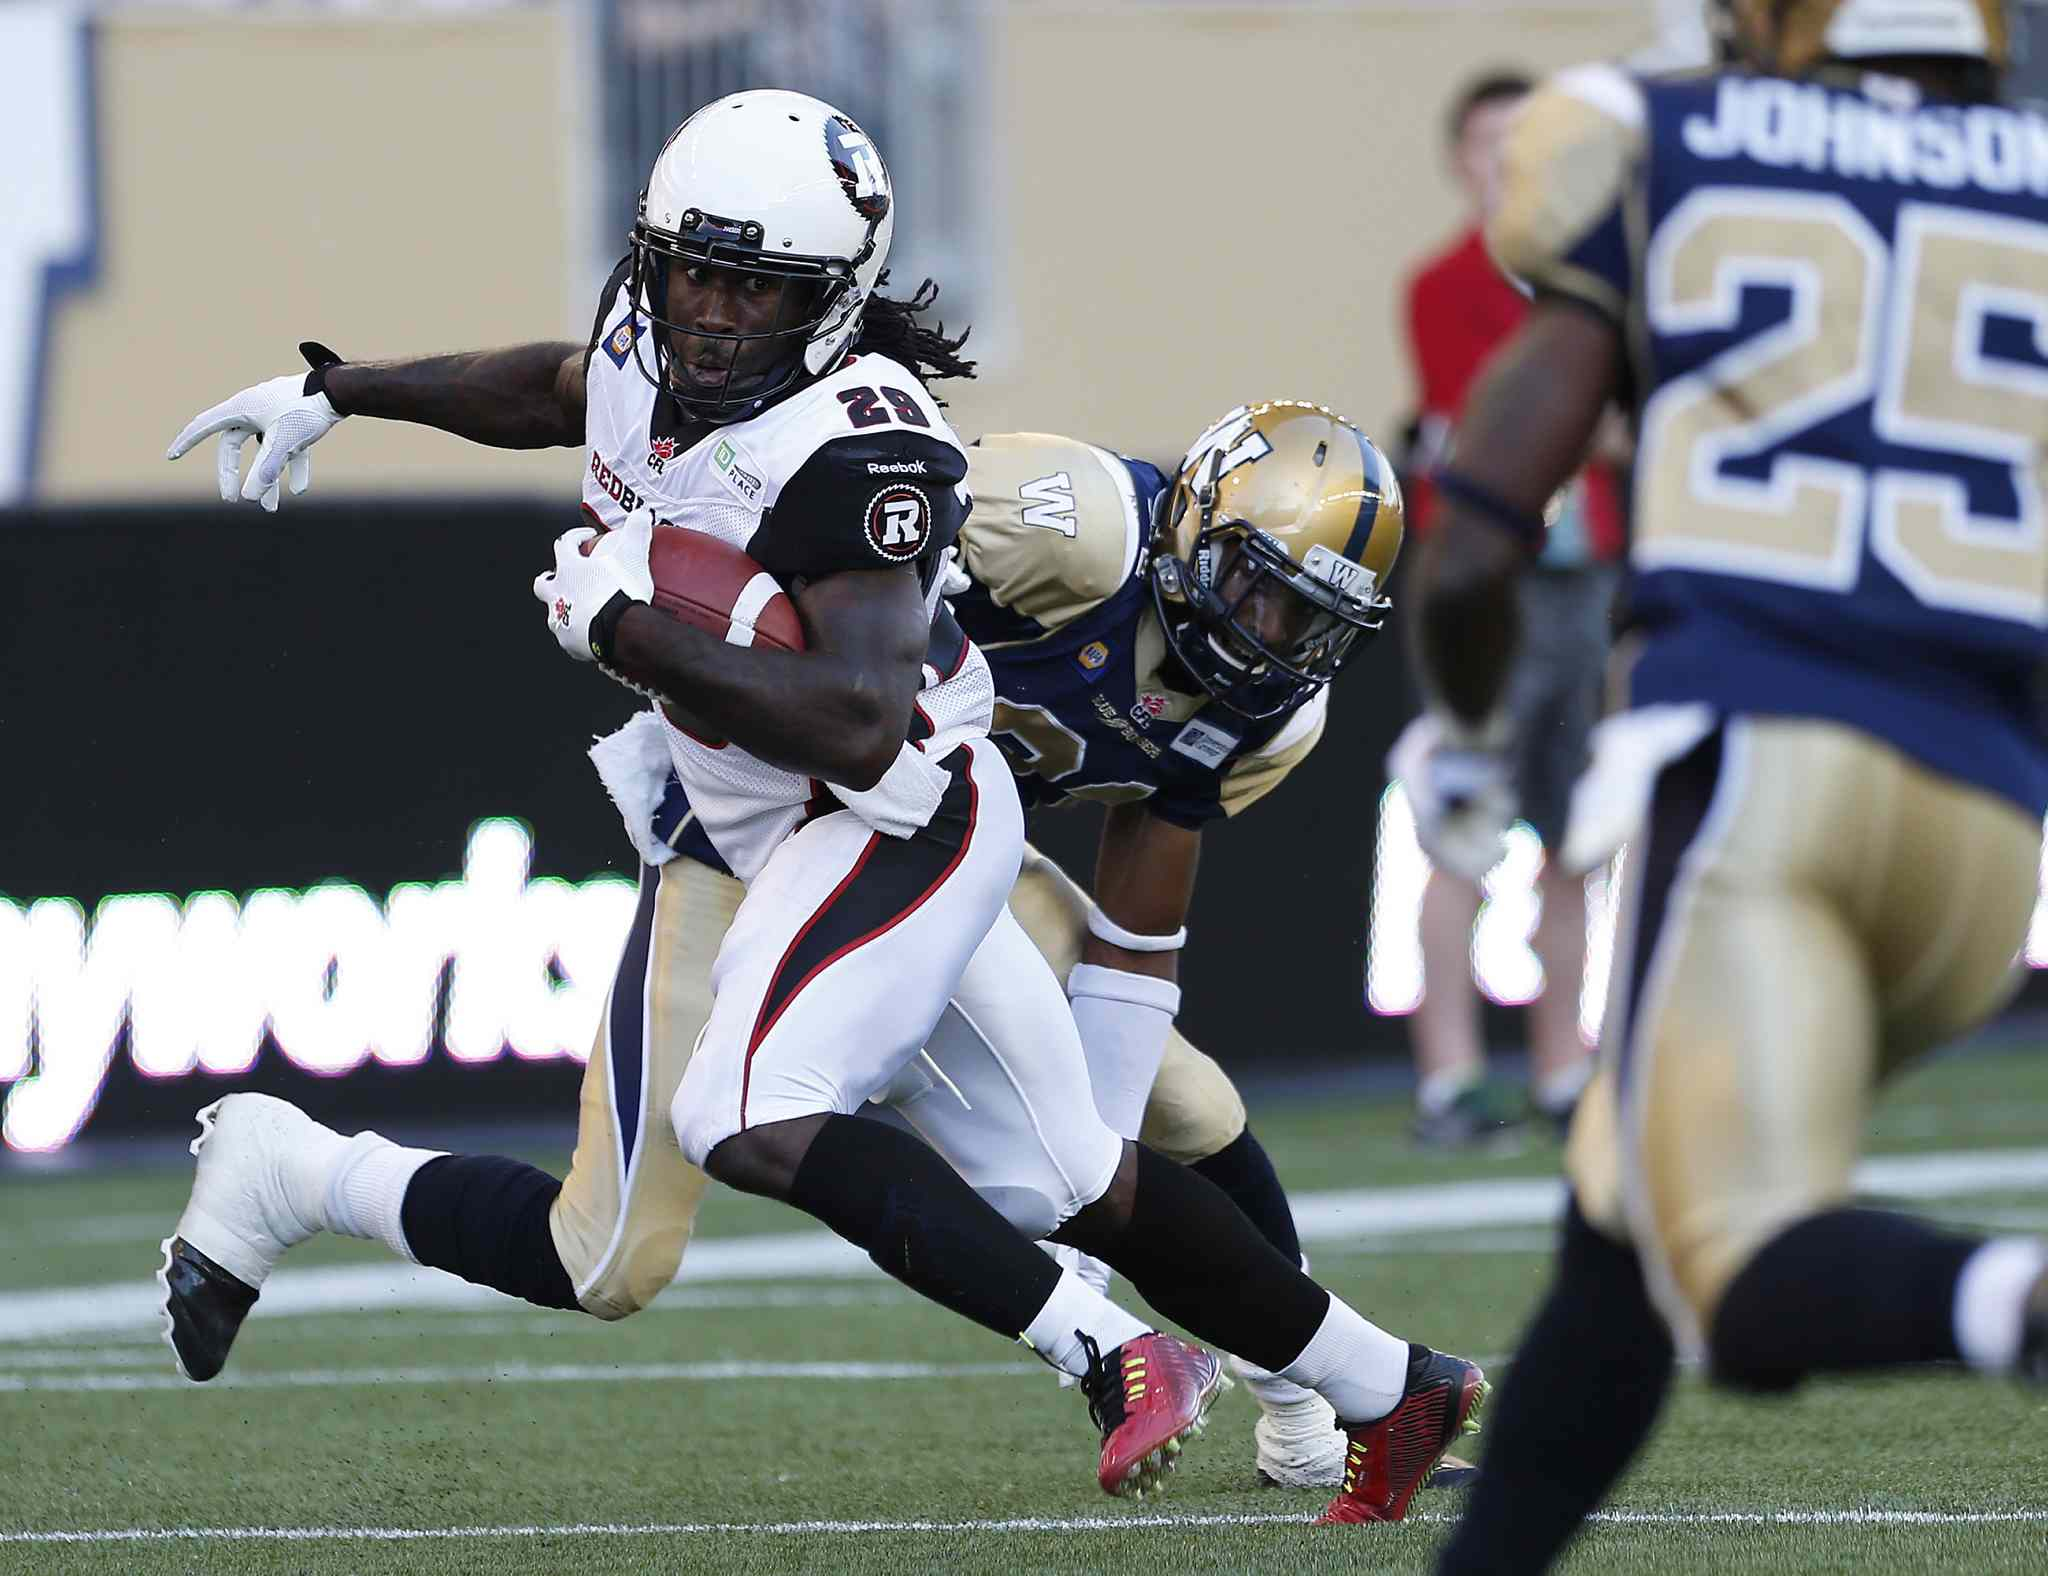 Ottawa Redblacks' Chevon Walker (29) breaks the tackle by Winnipeg Blue Bombers' Maurice Leggett (31) and runs the ball in for the touchdown during the first half of CFL action in Winnipeg on Thursday.